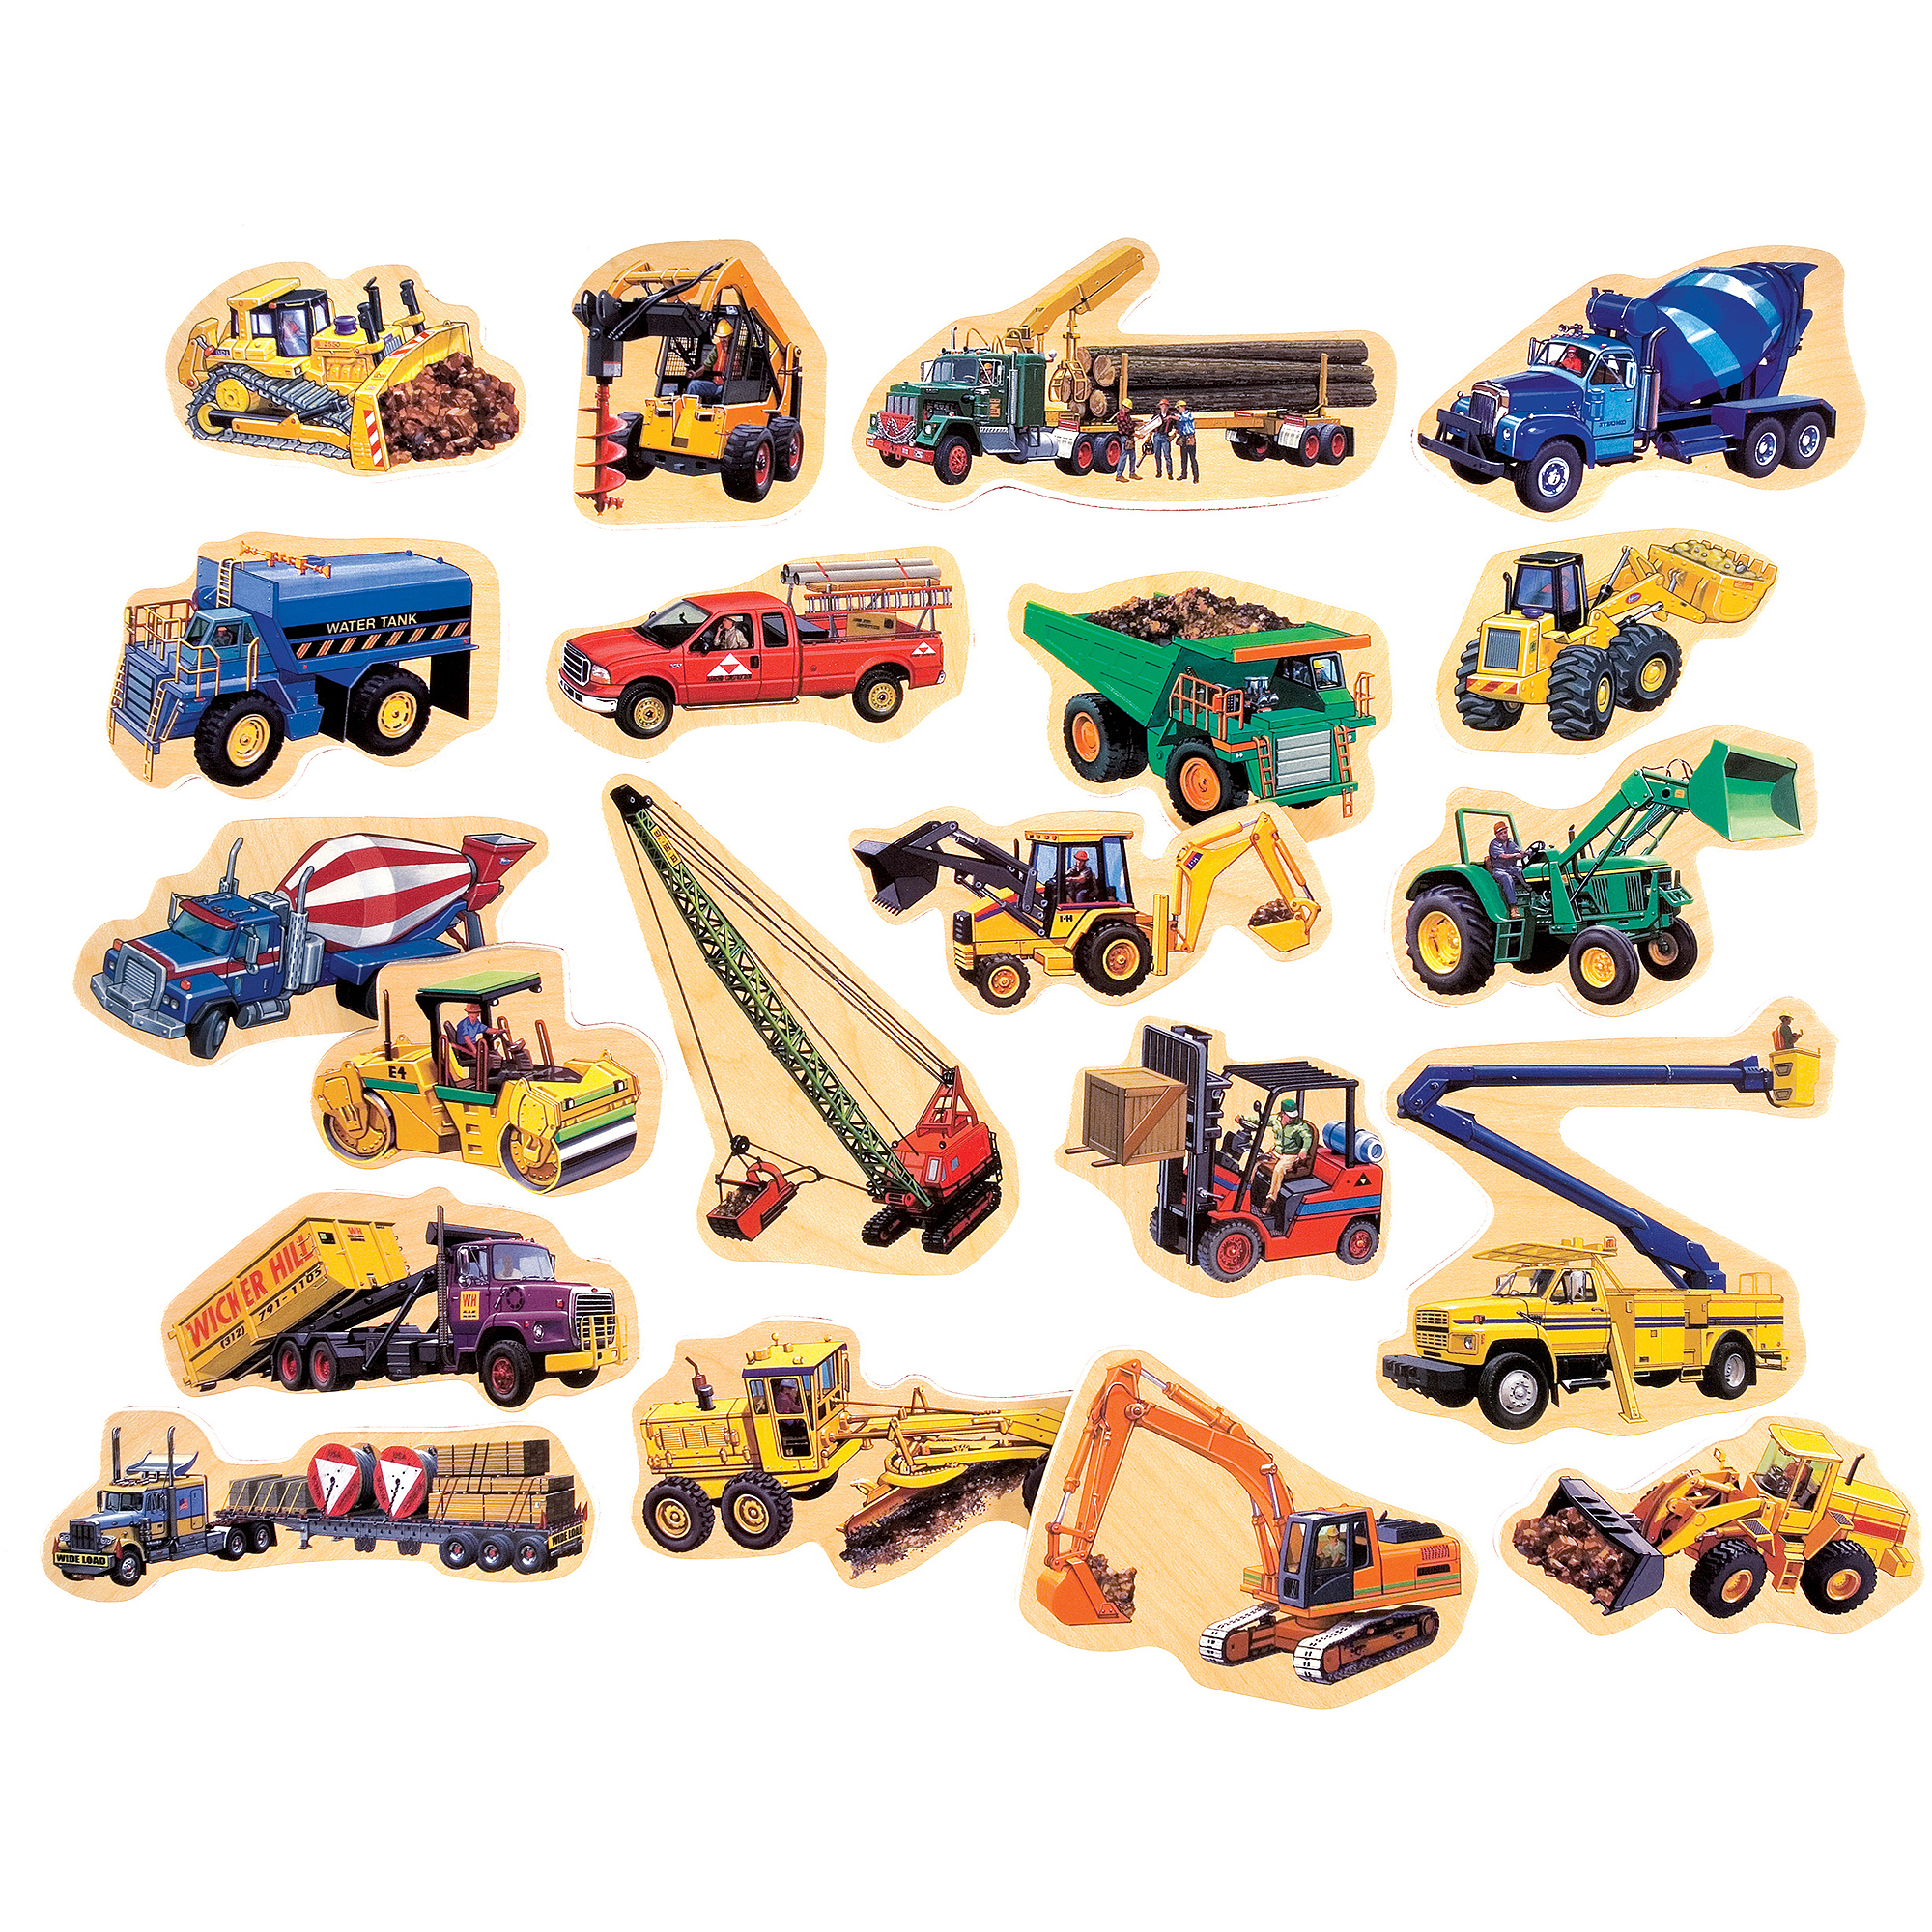 t s shure construction vehicles wooden magnets magnafun set 20 t s shure construction vehicles wooden magnets magnafun set 20 pieces walmart com